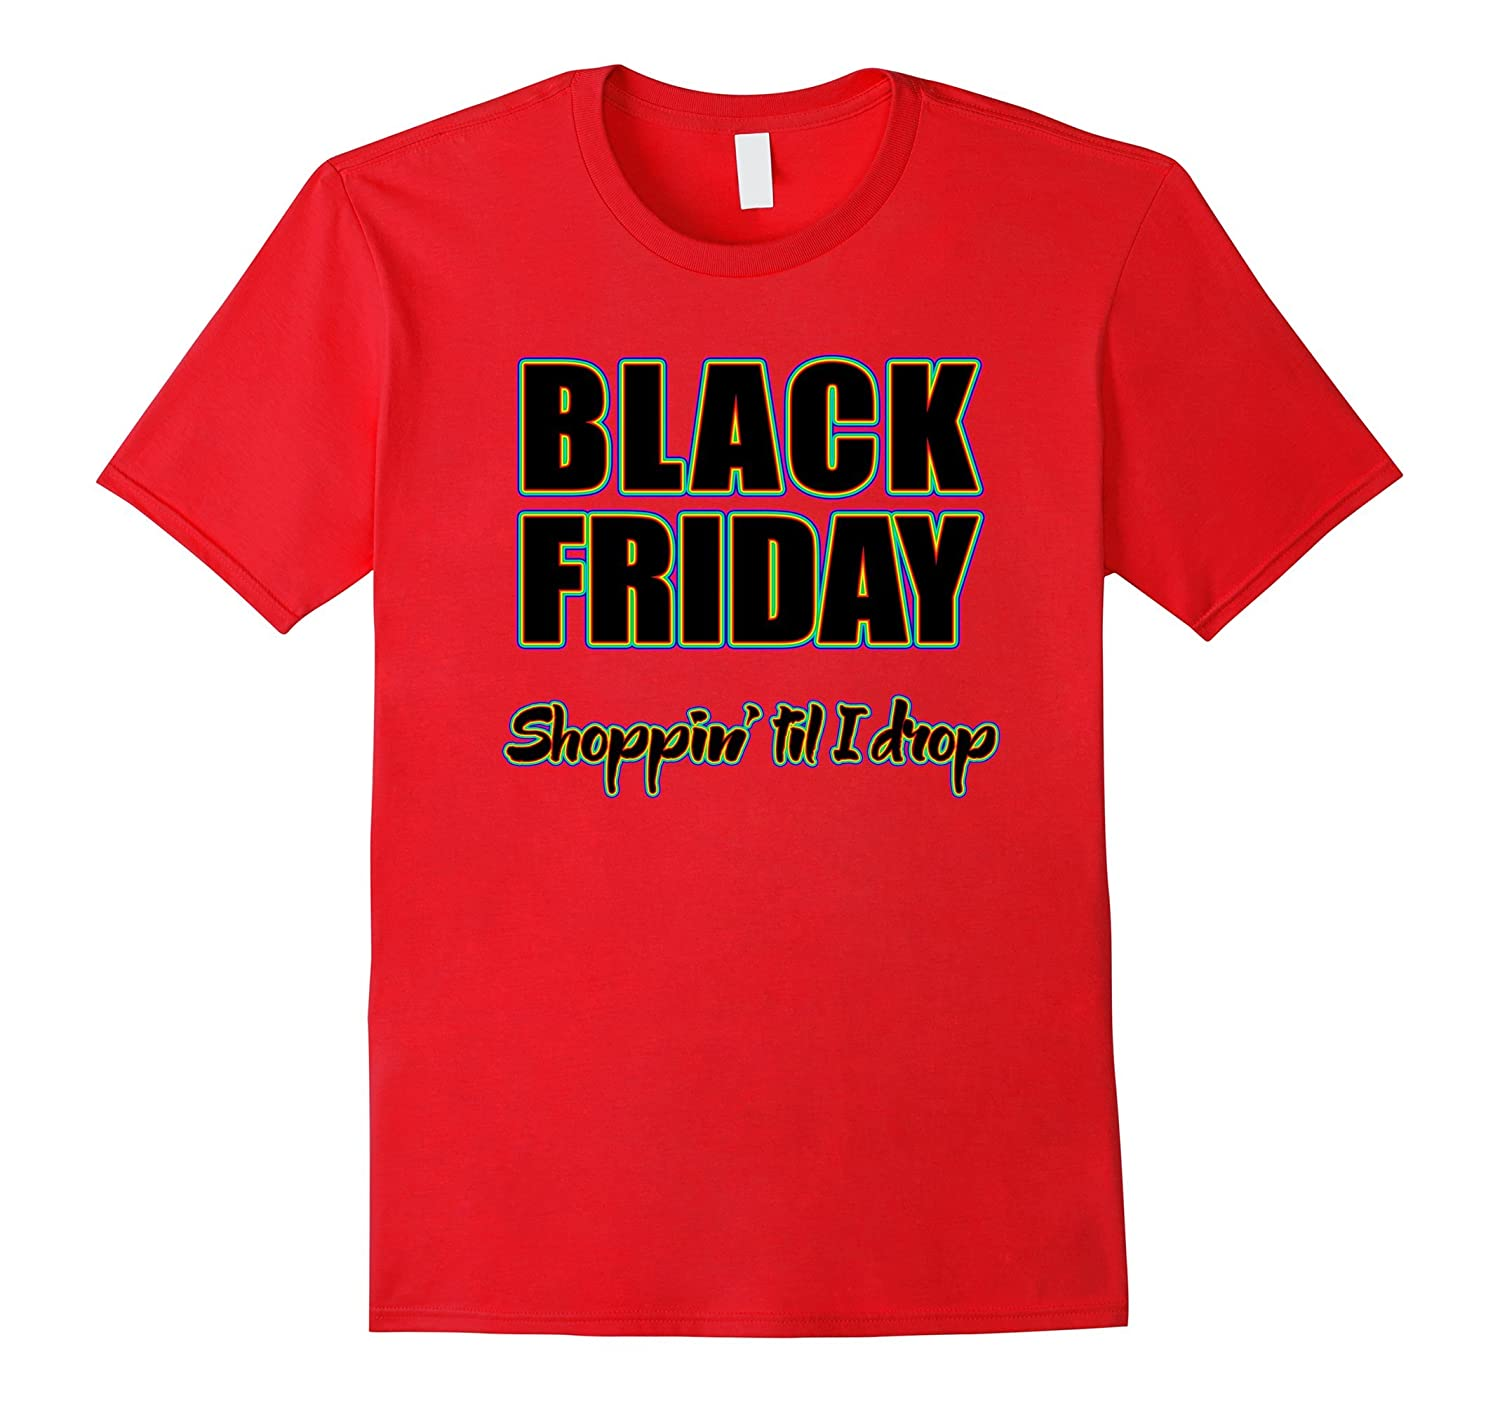 Black Friday Shoppin' Til I Drop Doorbuster Sale Day T-Shirt-CL